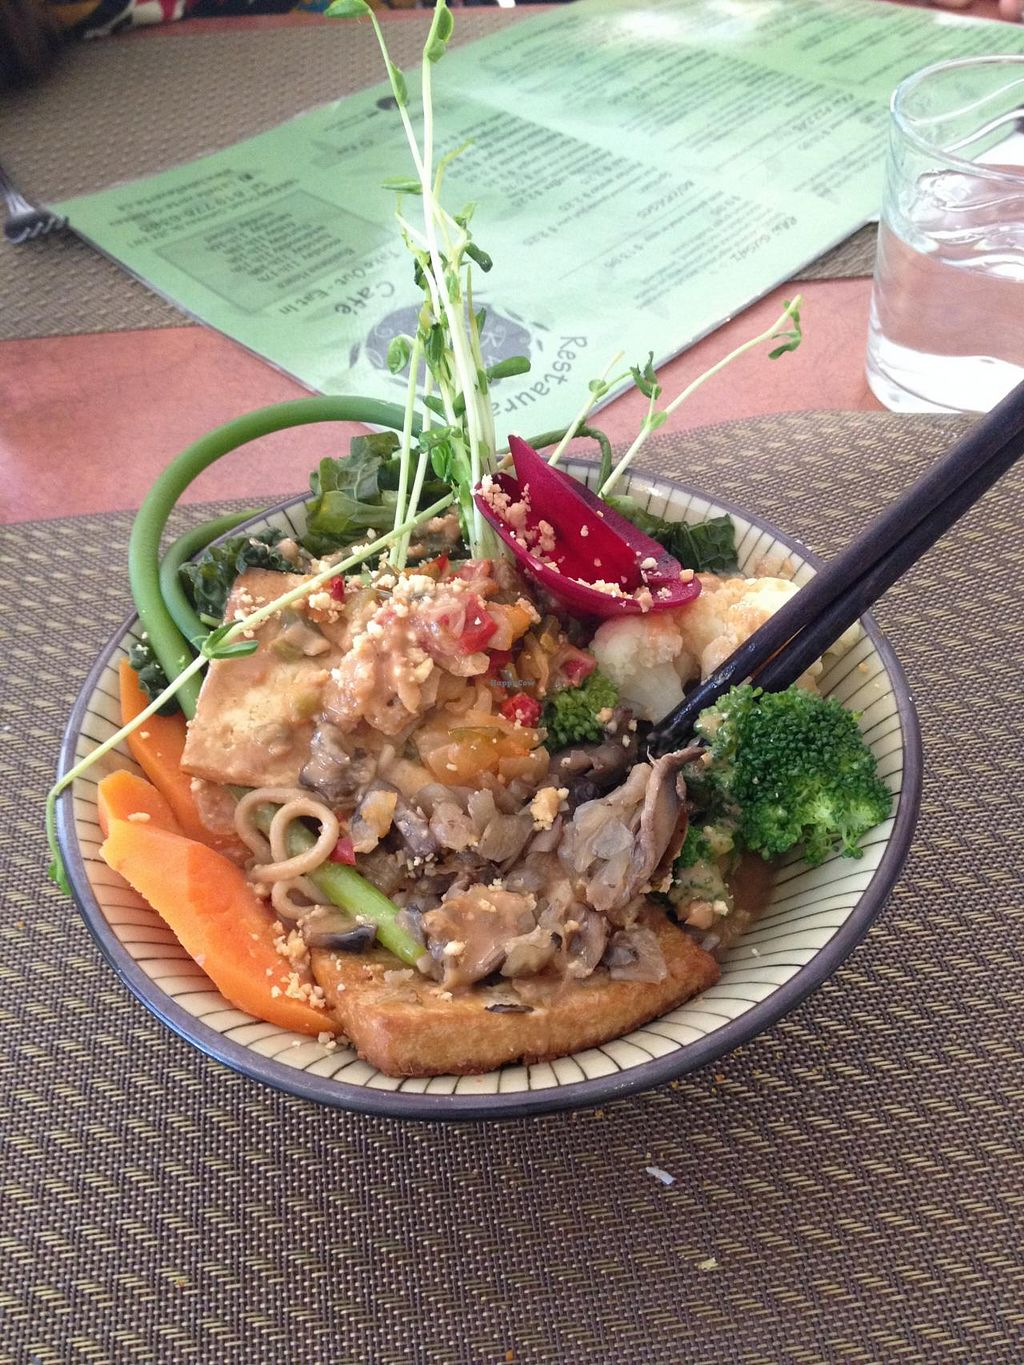 "Photo of La Belle Verte  by <a href=""/members/profile/bananah6"">bananah6</a> <br/>Belle Verte Buddah Bowl with peanut sauce, soba noodles, tofu and vegetables <br/> July 7, 2014  - <a href='/contact/abuse/image/20235/73450'>Report</a>"